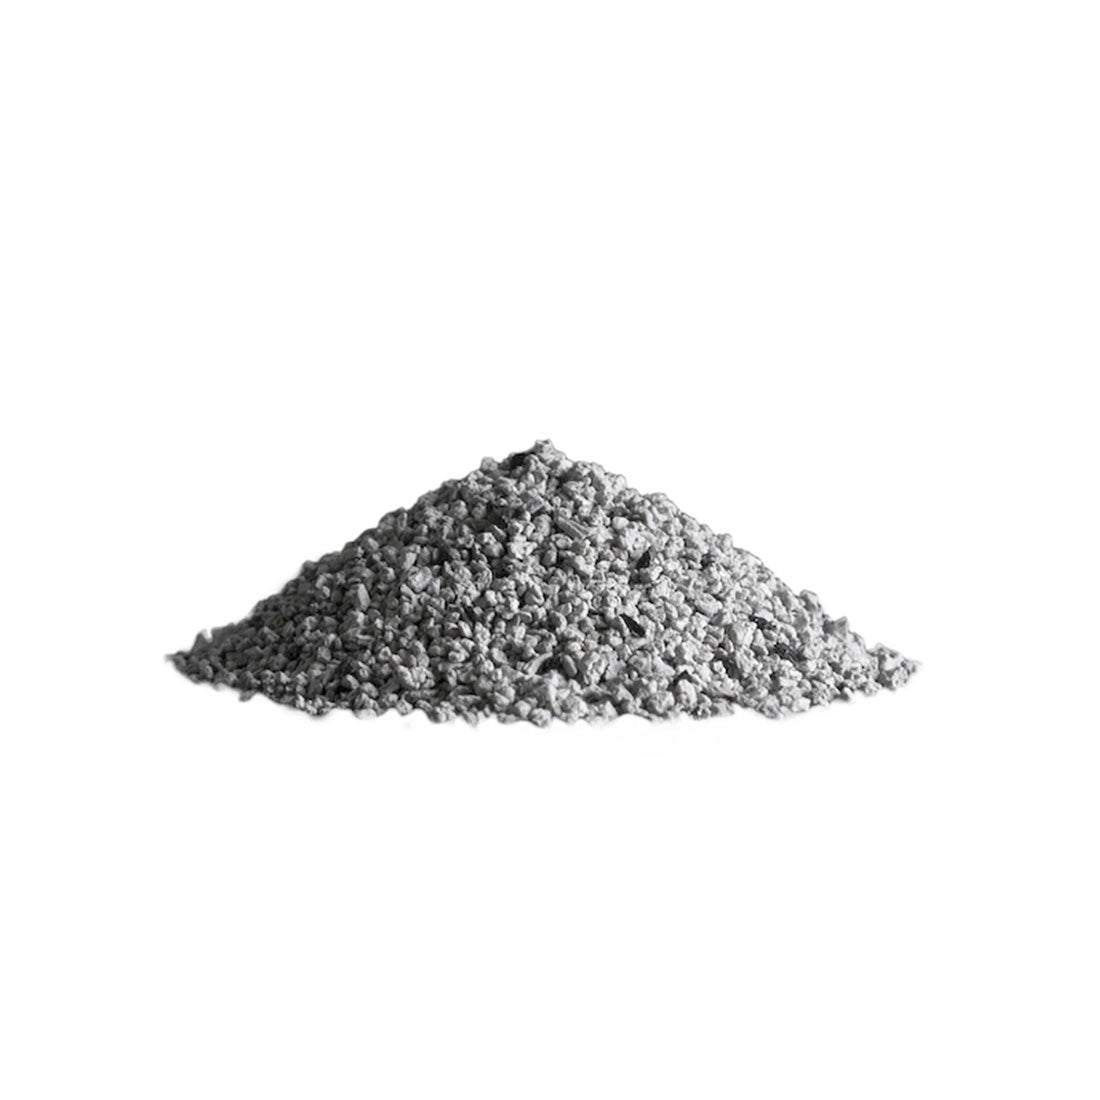 Pidan Black Hole Carbon Bentonite Dust Free Cat Litter 6kg / bag